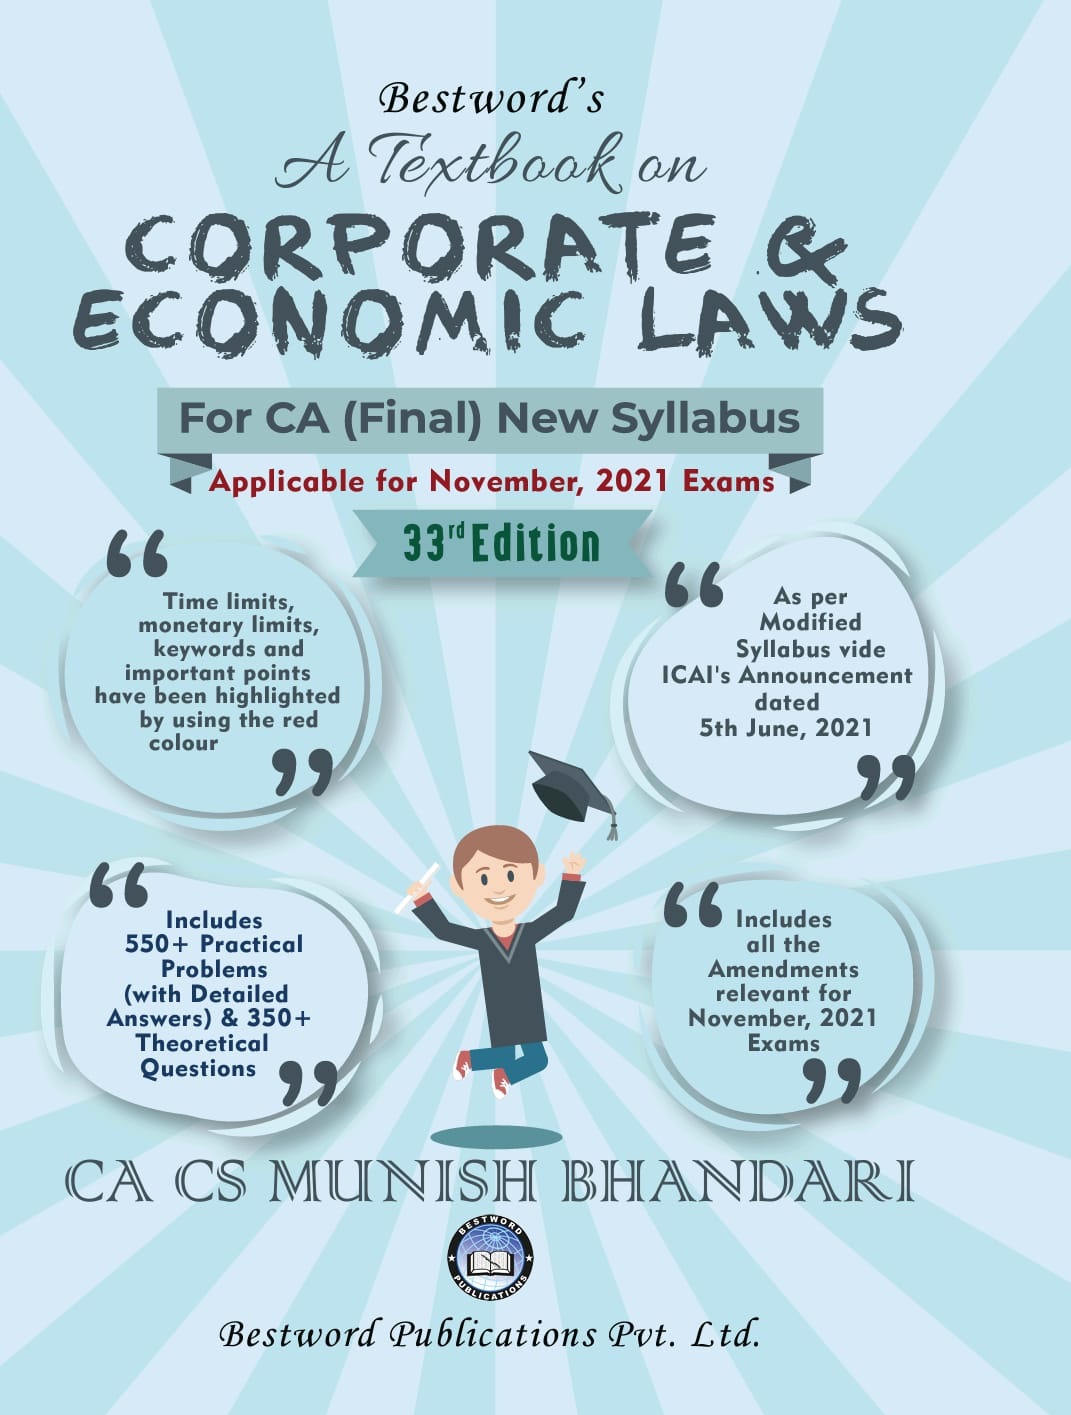 Bestword A Textbook on Corporate And Economic Laws New Syllabus for CA Final By Munish Bhandari Applicable for 2021 Exam